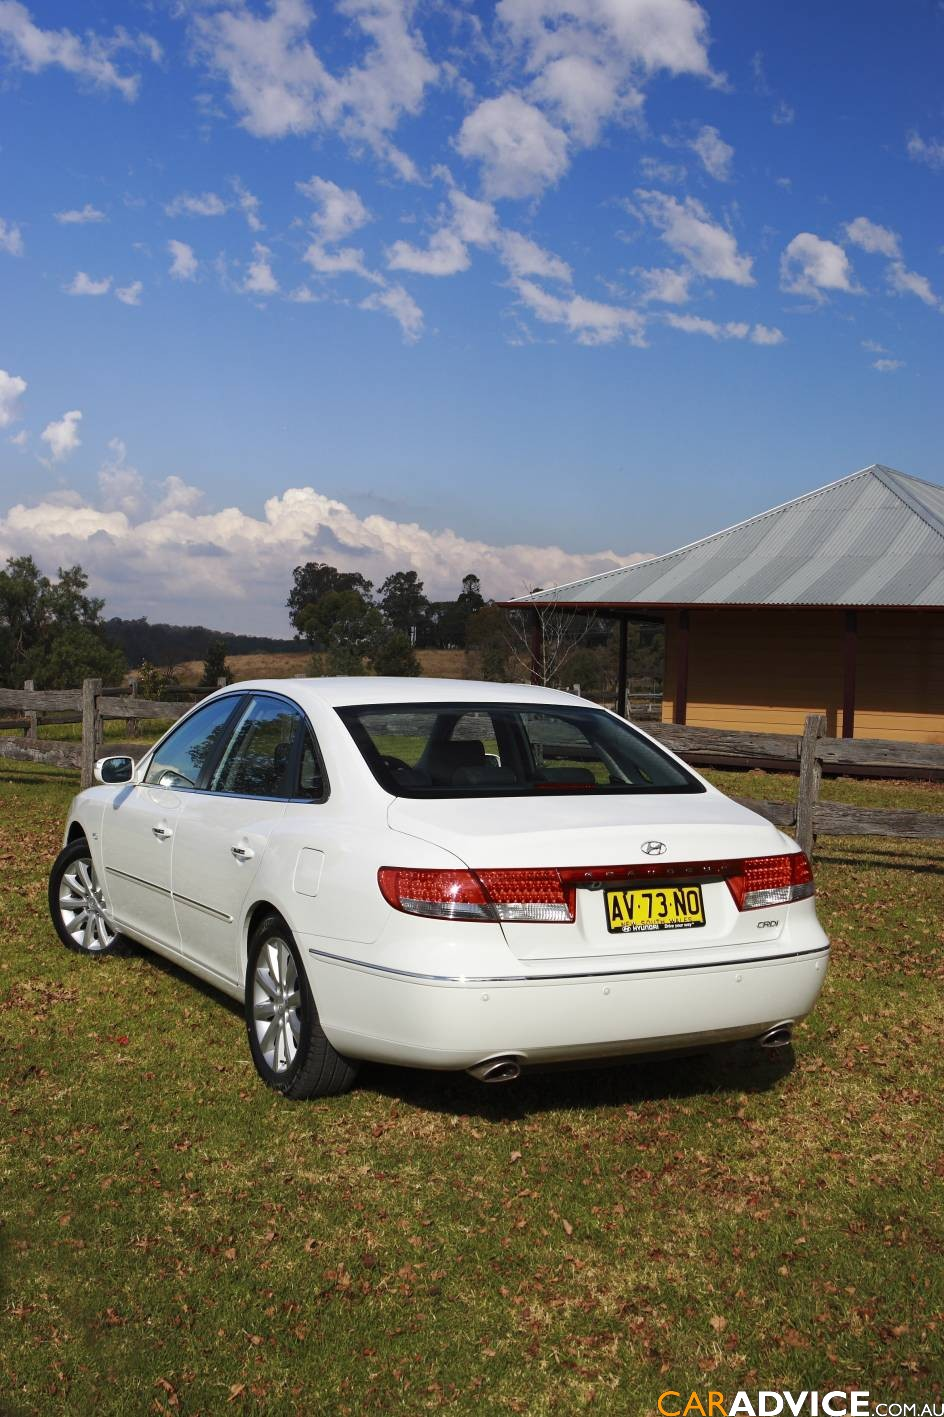 2009 Hyundai Grandeur Review - photos | CarAdvice